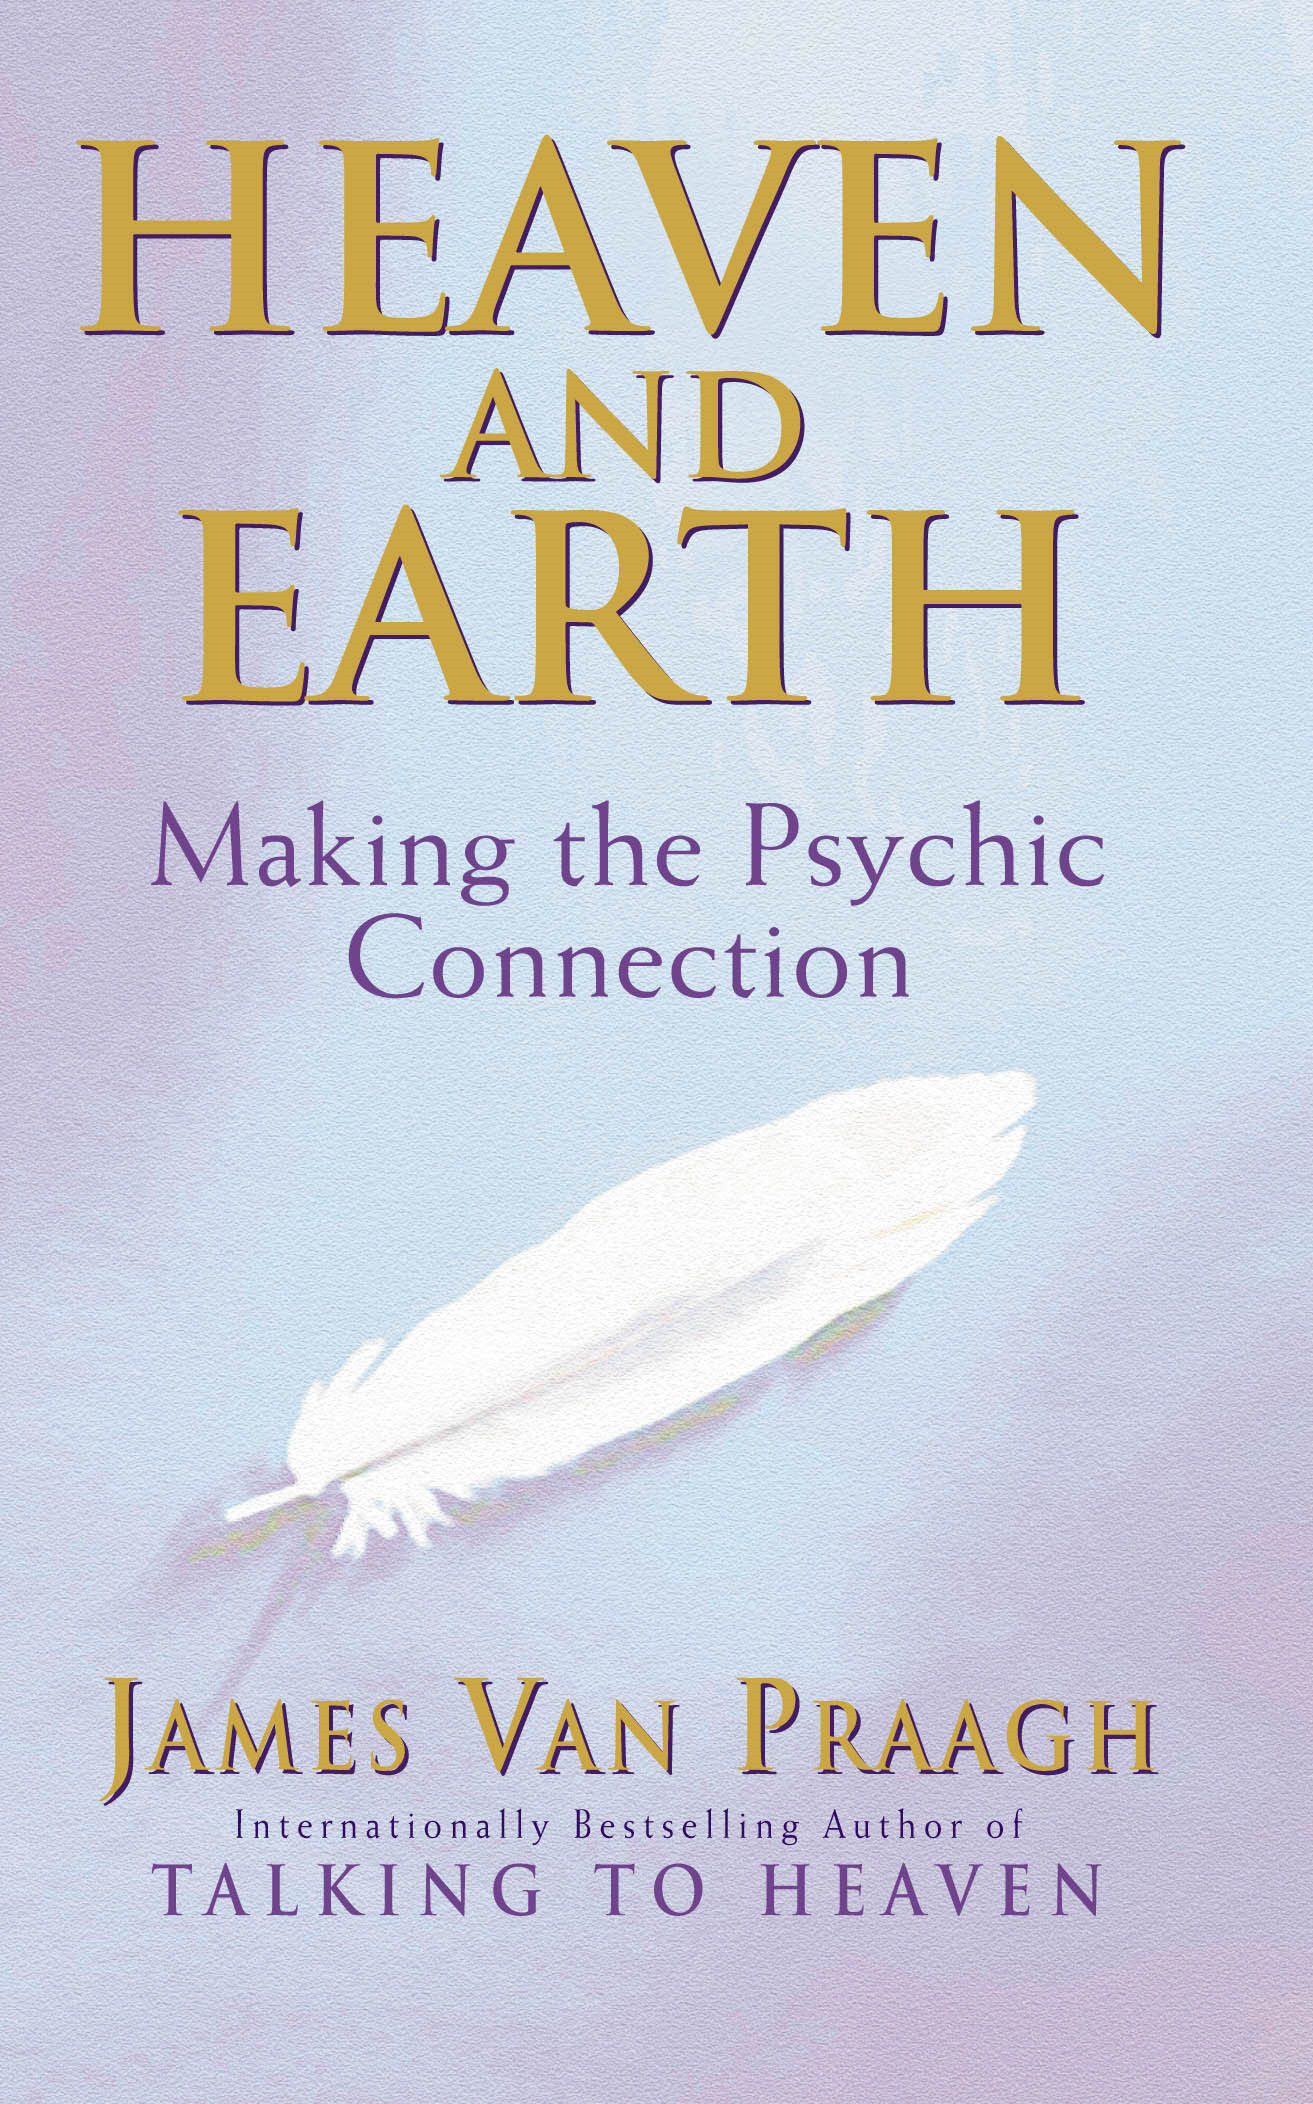 Heaven And Earth Making the Psychic Connection